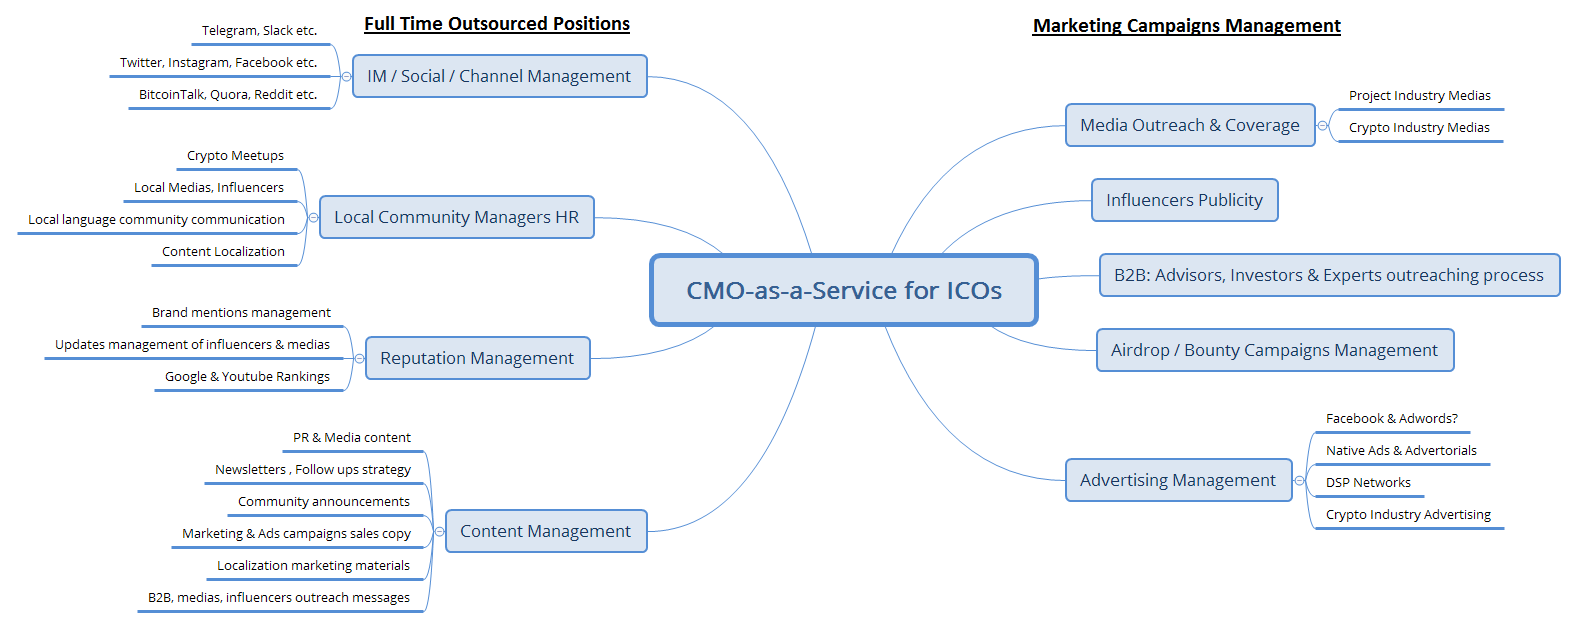 CMOICO.com is a 1 stop shop for #ICO ads, media & influencers campaigns management on a budget, as well as full time jobs positions outsourcing like local community managers, social & IM channels management for #Blockchain projects that already got funded or for those who are currently developing their ICO crowdsale marketing strategy. Advertising budget management, b2b2c ICO marketing campaigns, outreaching process.